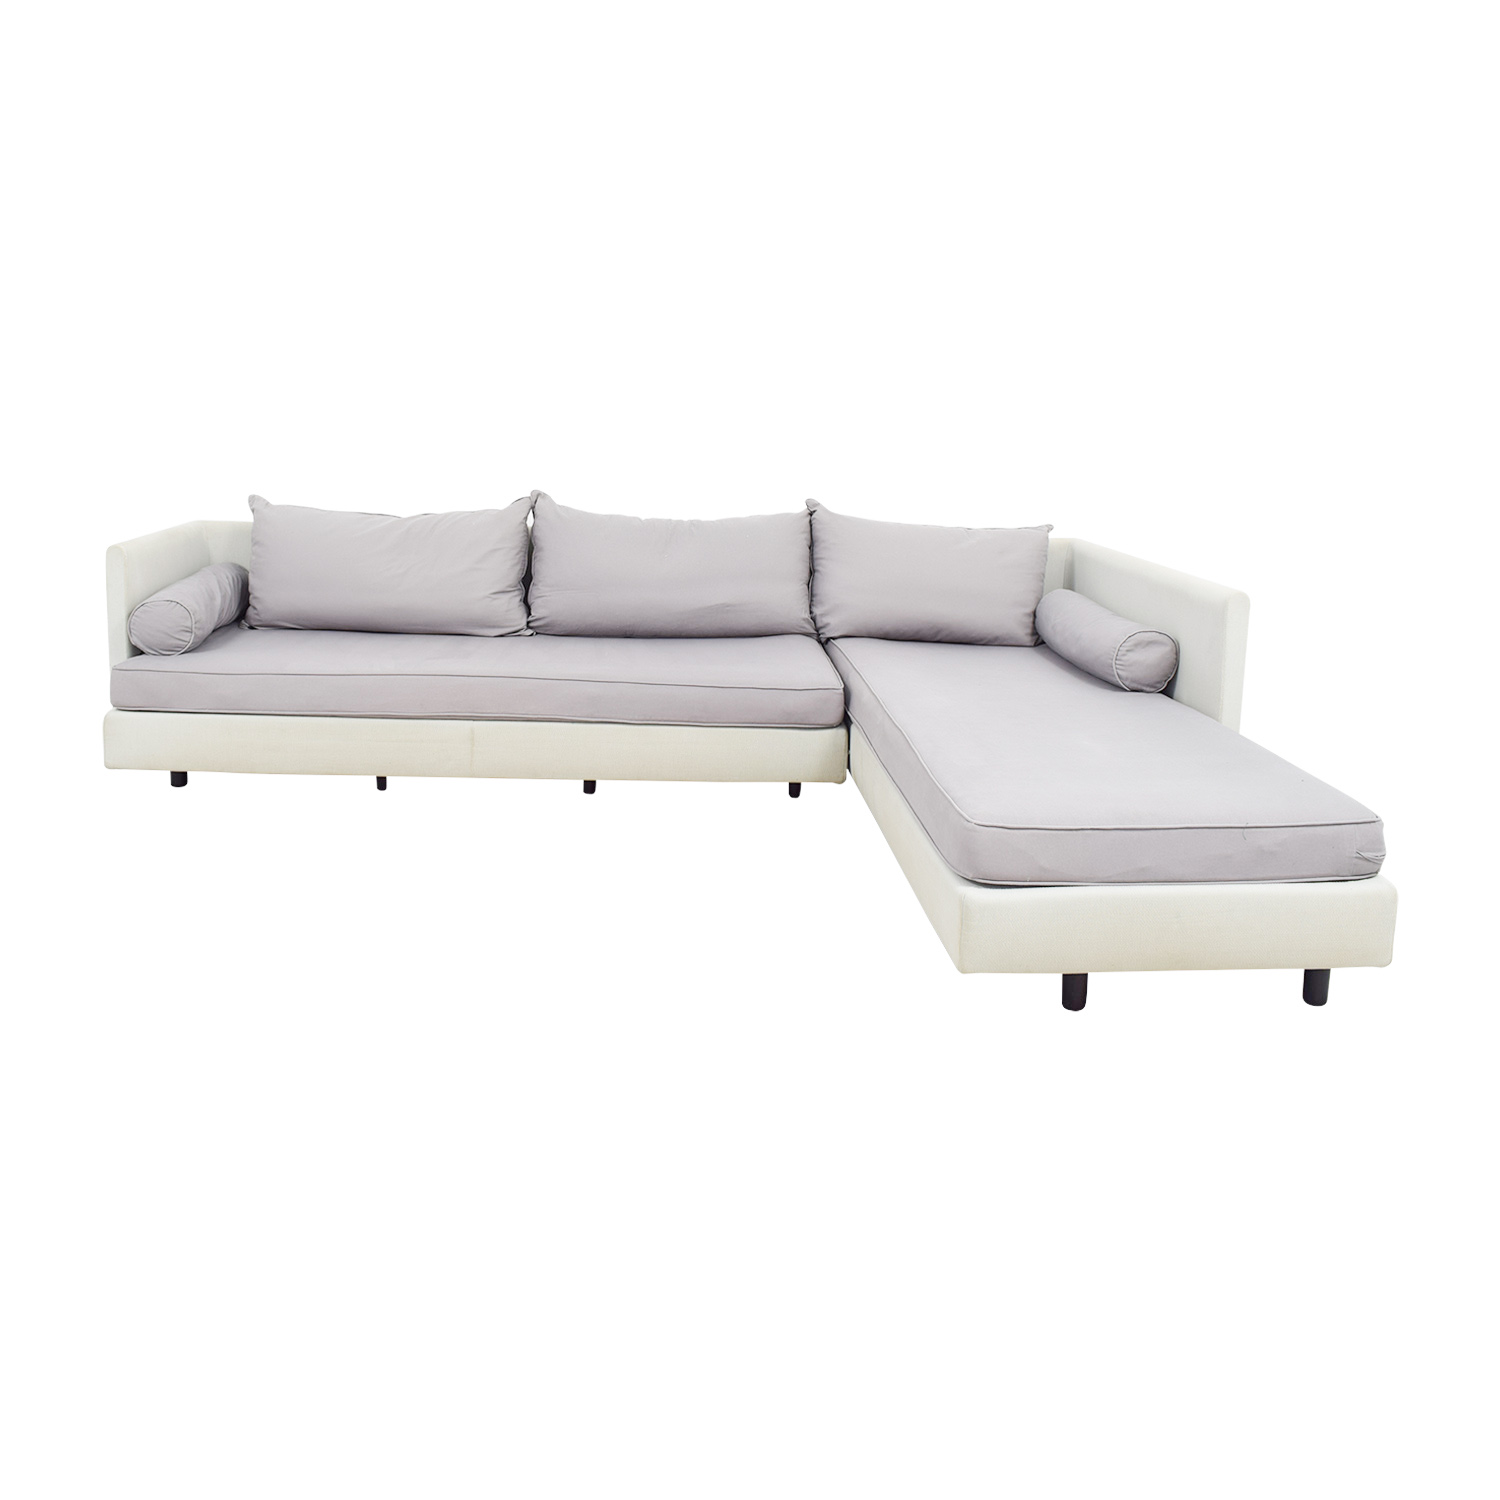 Ligne Roset Ligne Roset Nomad Beige Chaise Sofa on sale